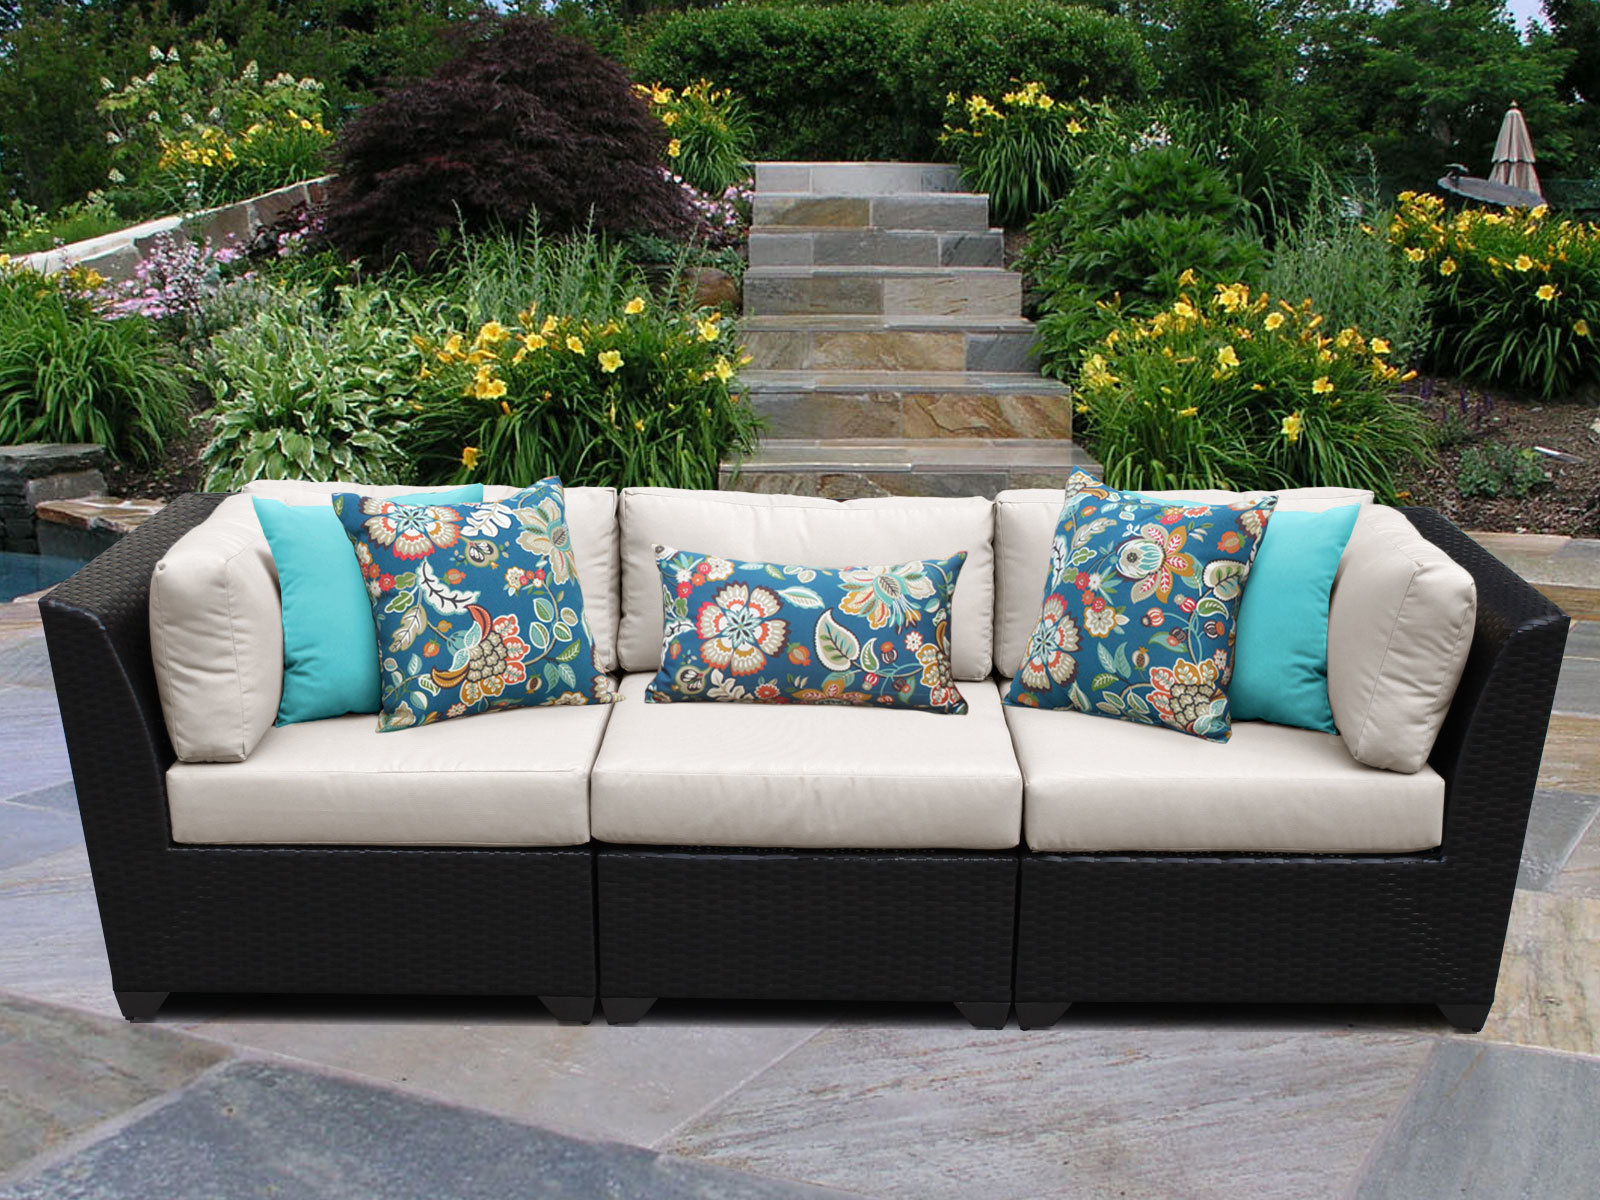 Camak Patio Sofa With Cushions For Most Current Vallauris Sofa With Cushions (View 2 of 20)